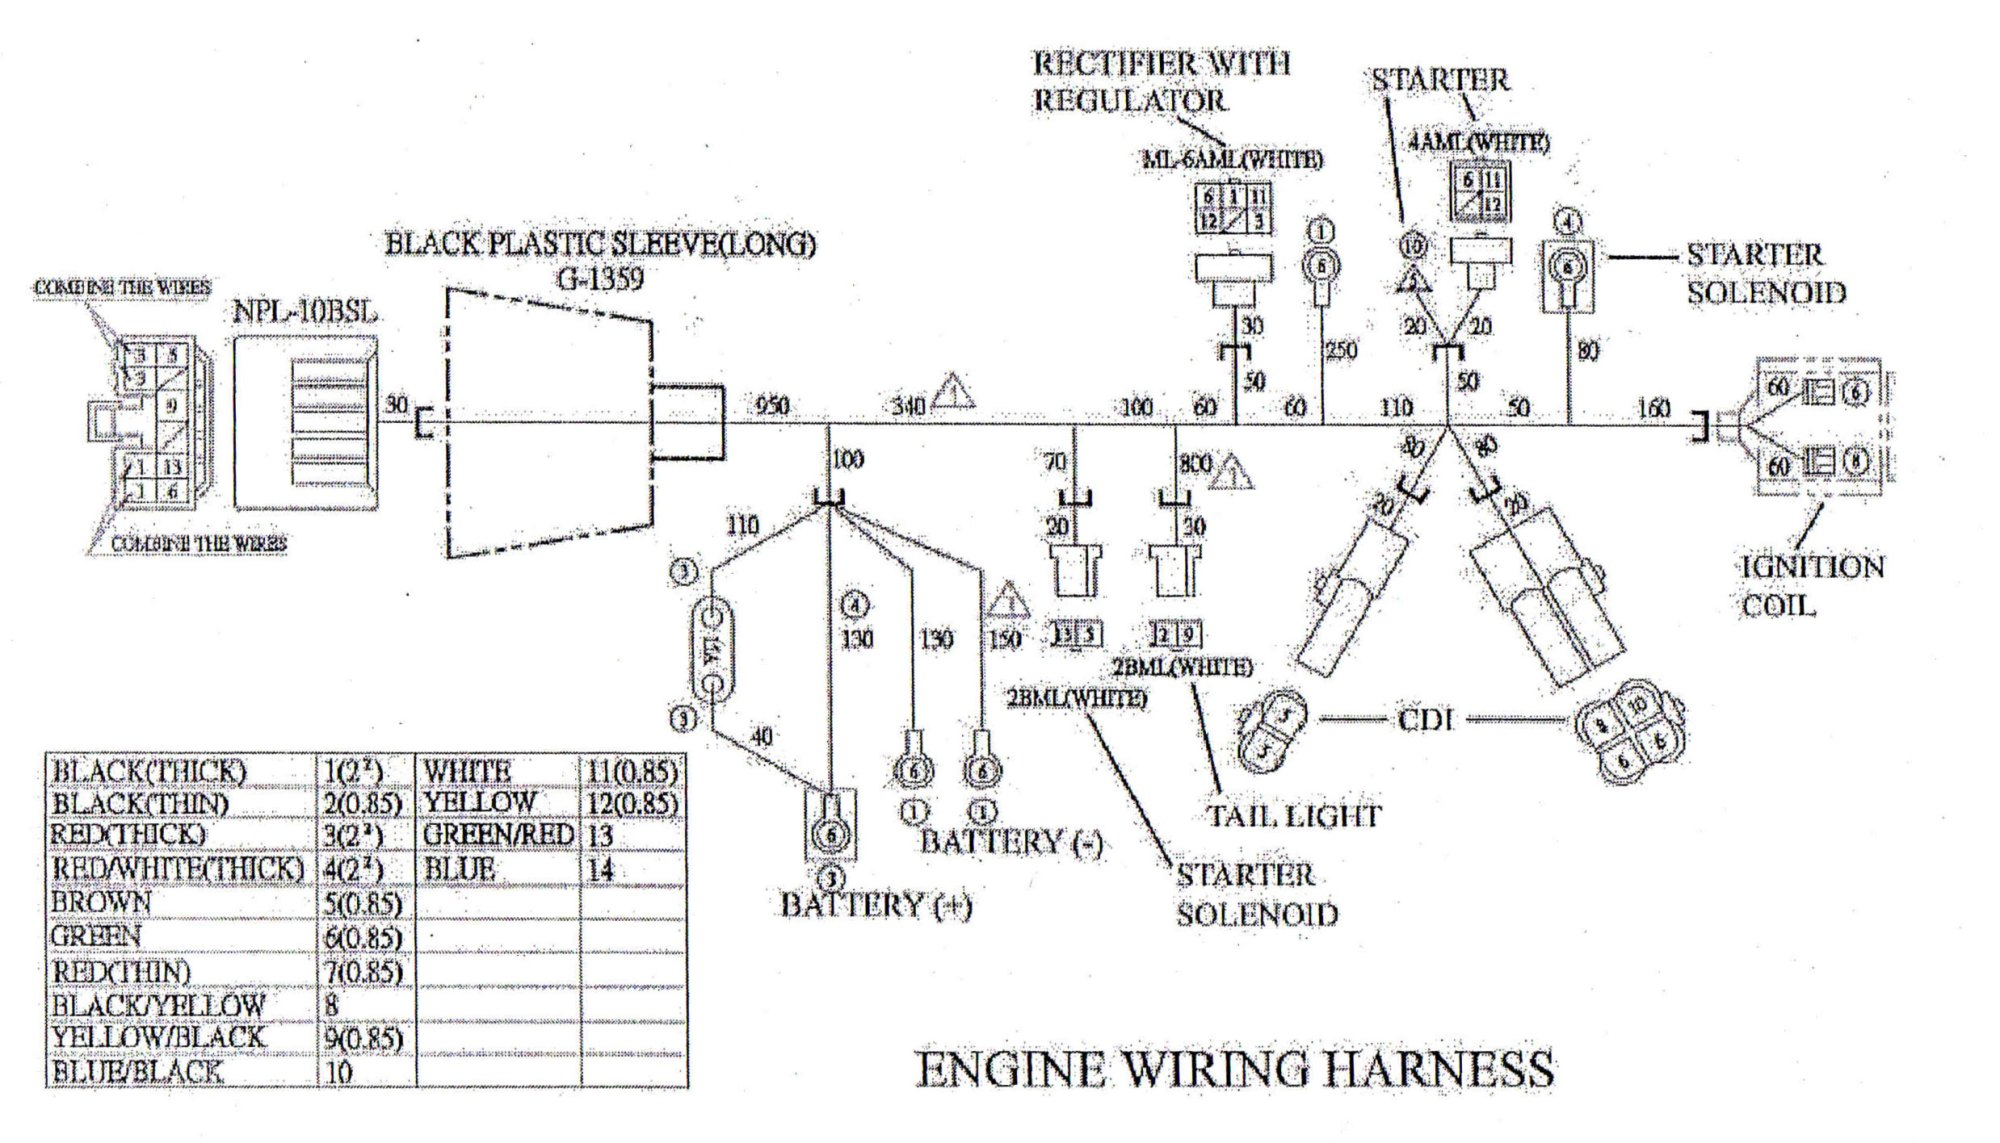 hight resolution of engine wiring harness for yerf dog cuvs 05138 bmi karts and partswiring diagram for the engine